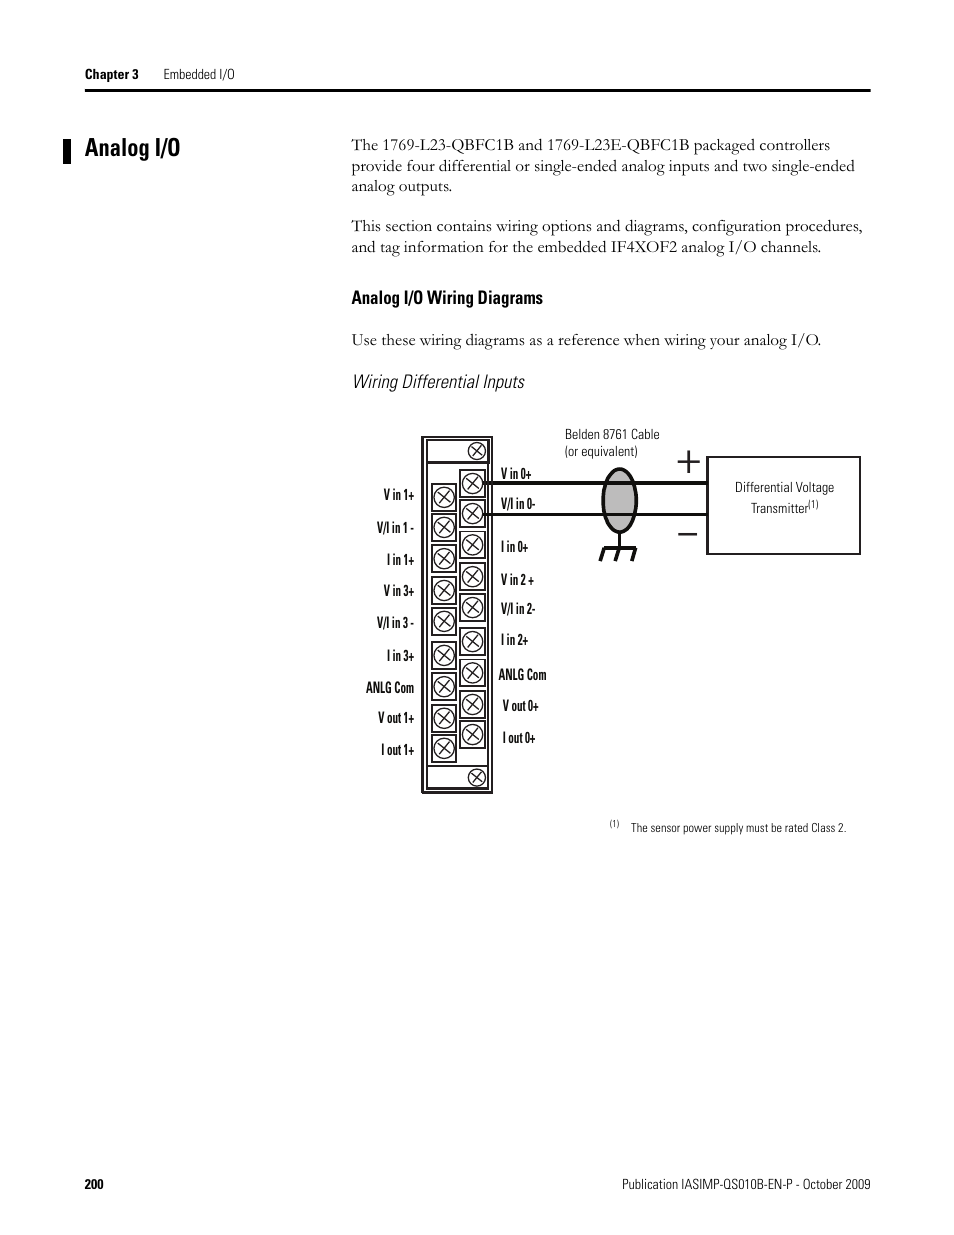 rockwell automation 1769 l23e qb1b_l23e qbfc1b_l23 qbfc1b compactlogix packaged controllers quick start and user manual page200 powerflex 755 wiring diagrams 480 vac powerflex discover your 1769 if8 wiring diagram at panicattacktreatment.co